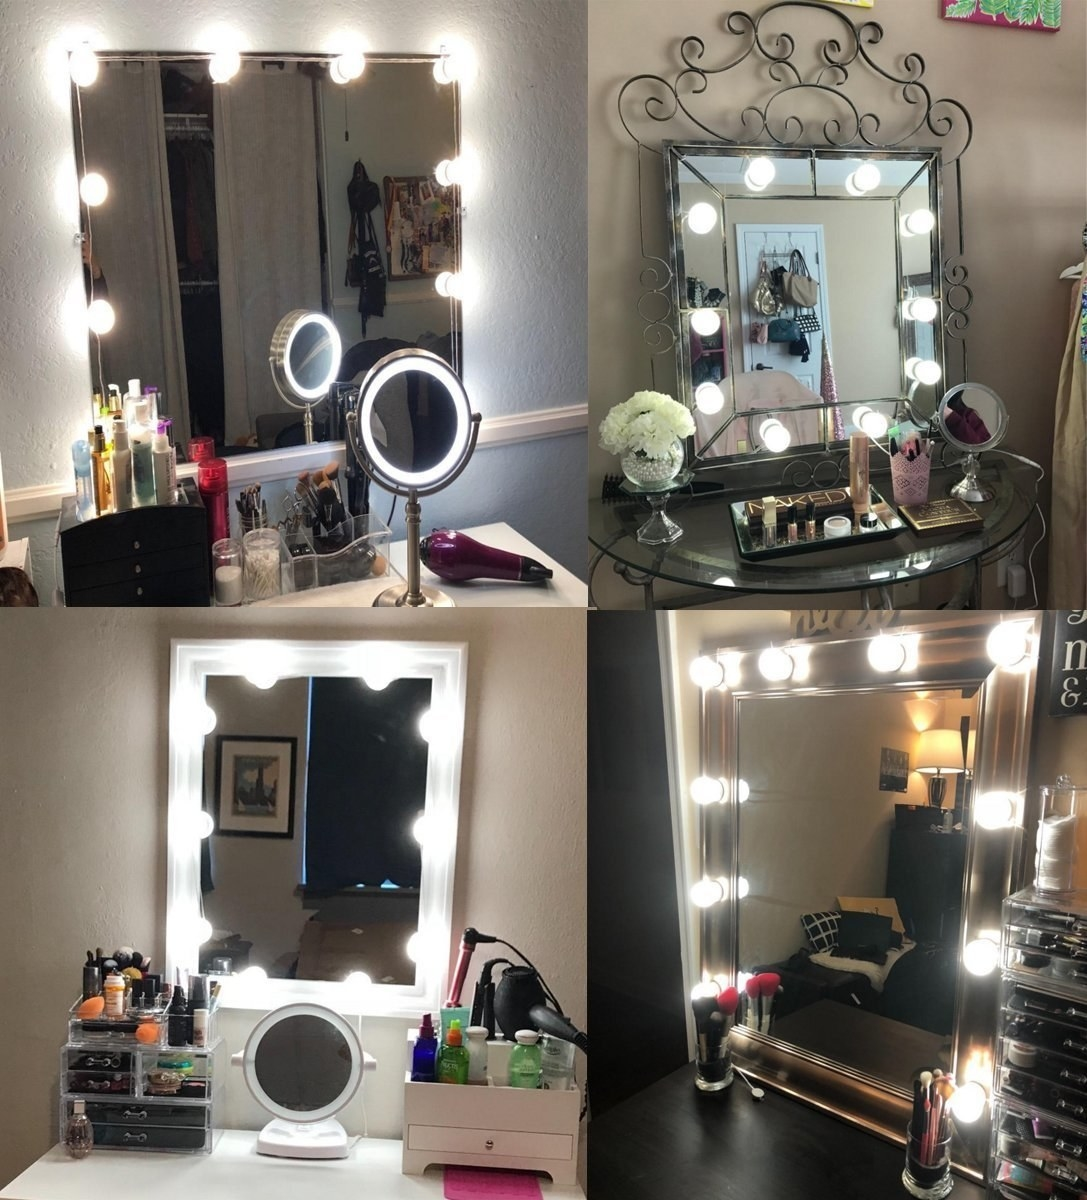 A collage of LED lights being used on different vanity mirrors